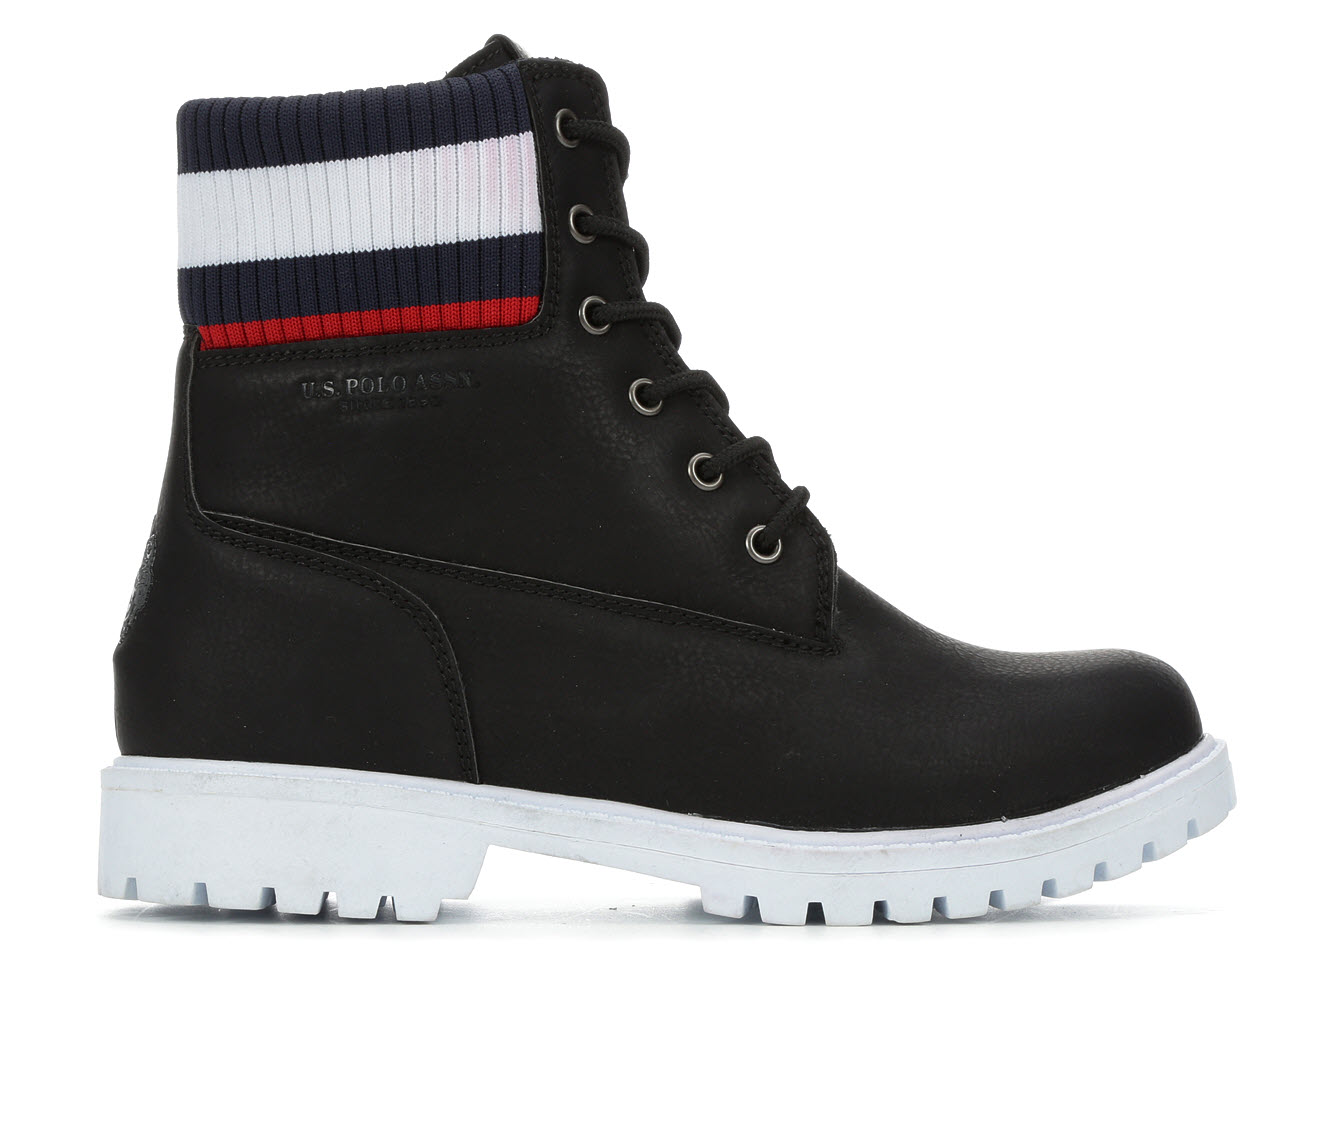 US Polo Assn Holland Women's Boot (Black Faux Leather)